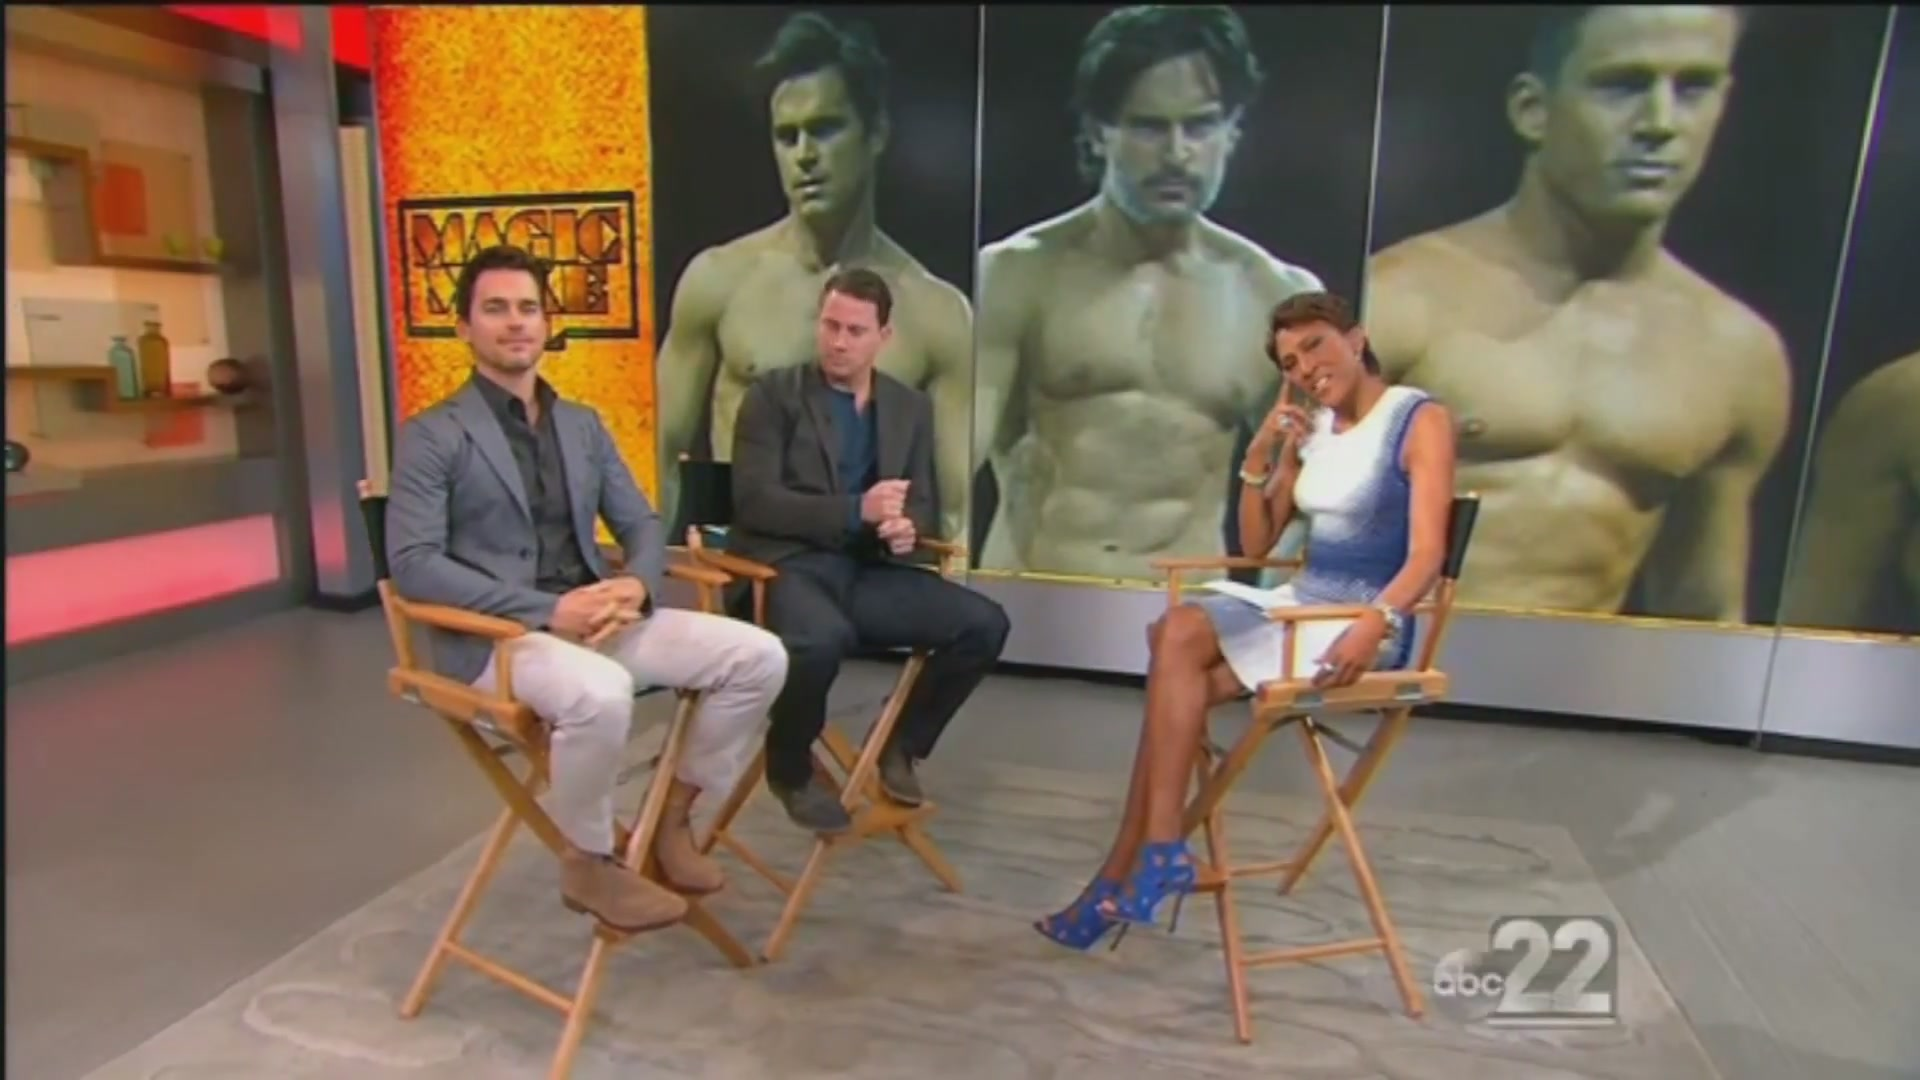 Matt Bomer and Channing Tatum Talk 'Magic Mike XXL' on GMA